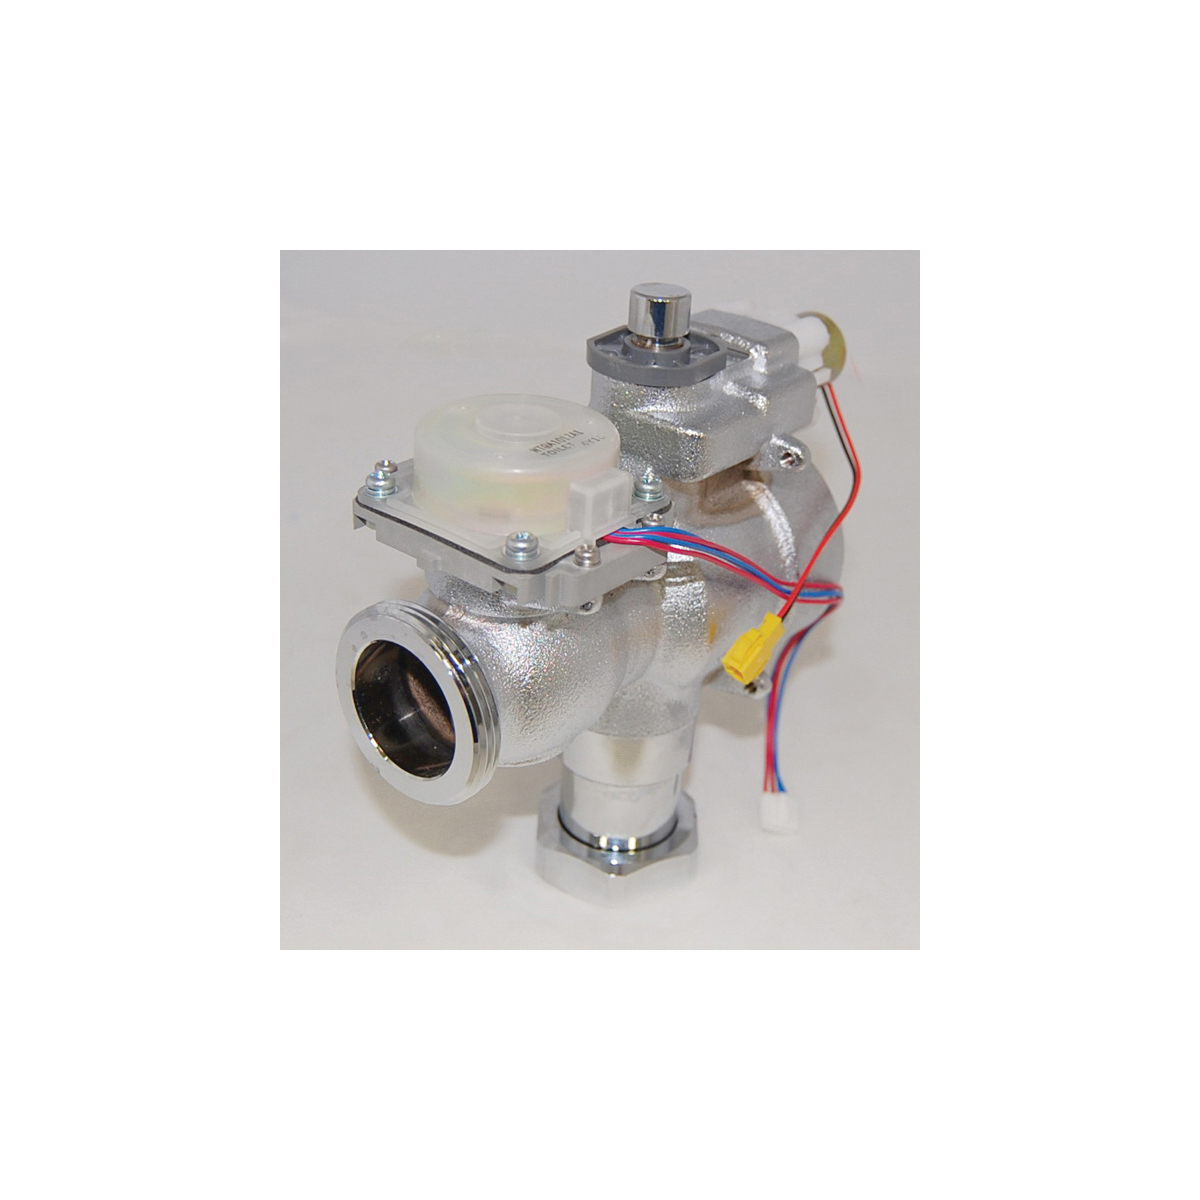 Toto® TH559EDV501 Valve Body, For Use With EcoPower® TEW1GNC Hydro-Power Charge 3.5 gpf Exposed Sensor Toilet Flush Valve